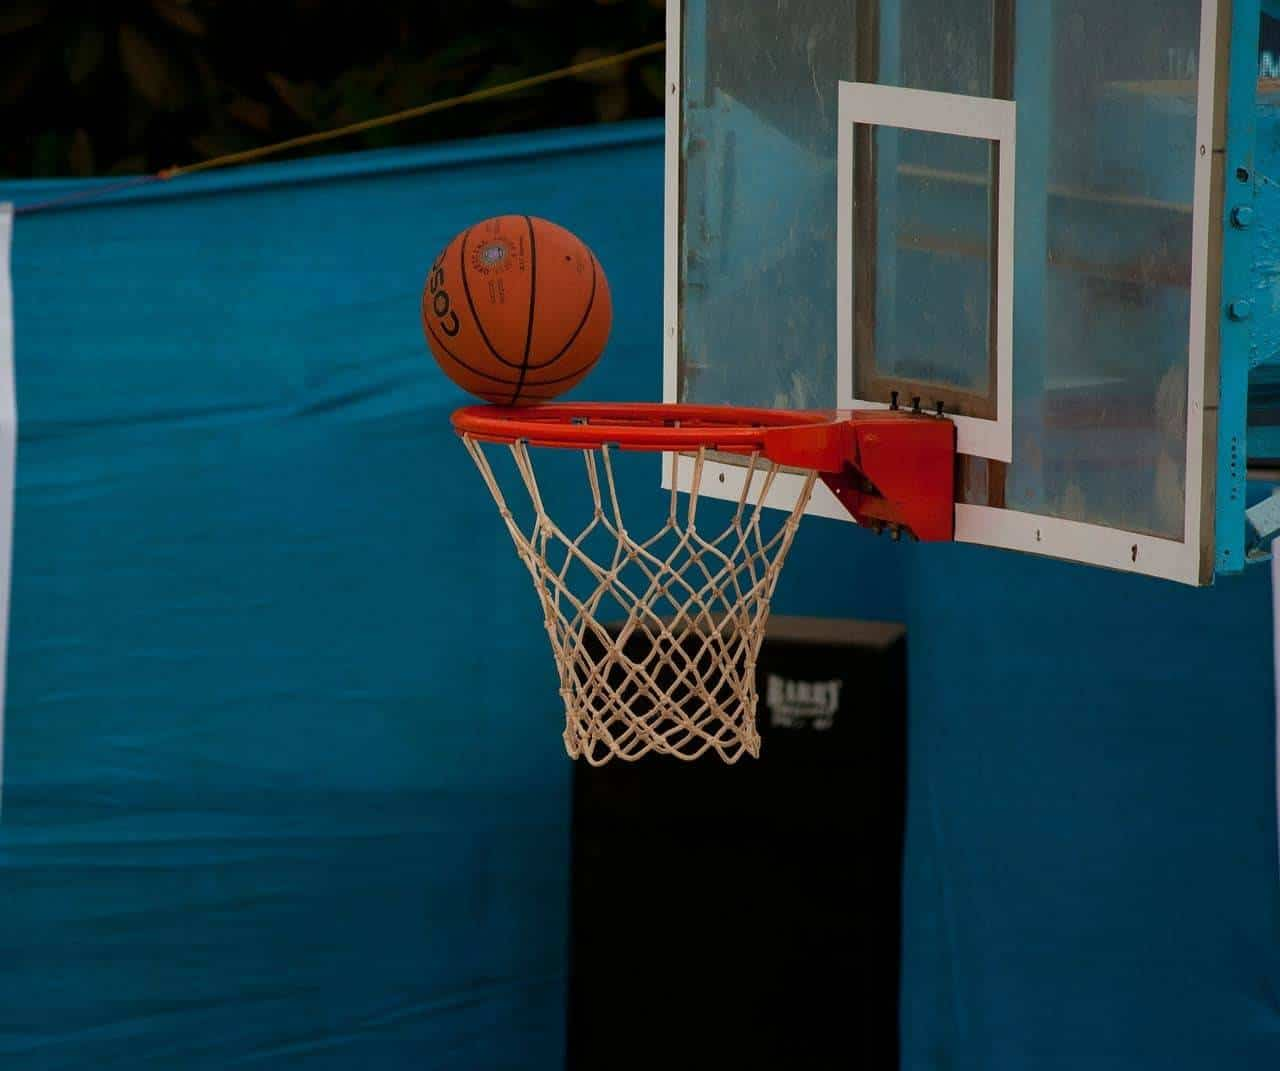 Rebound Resiliently